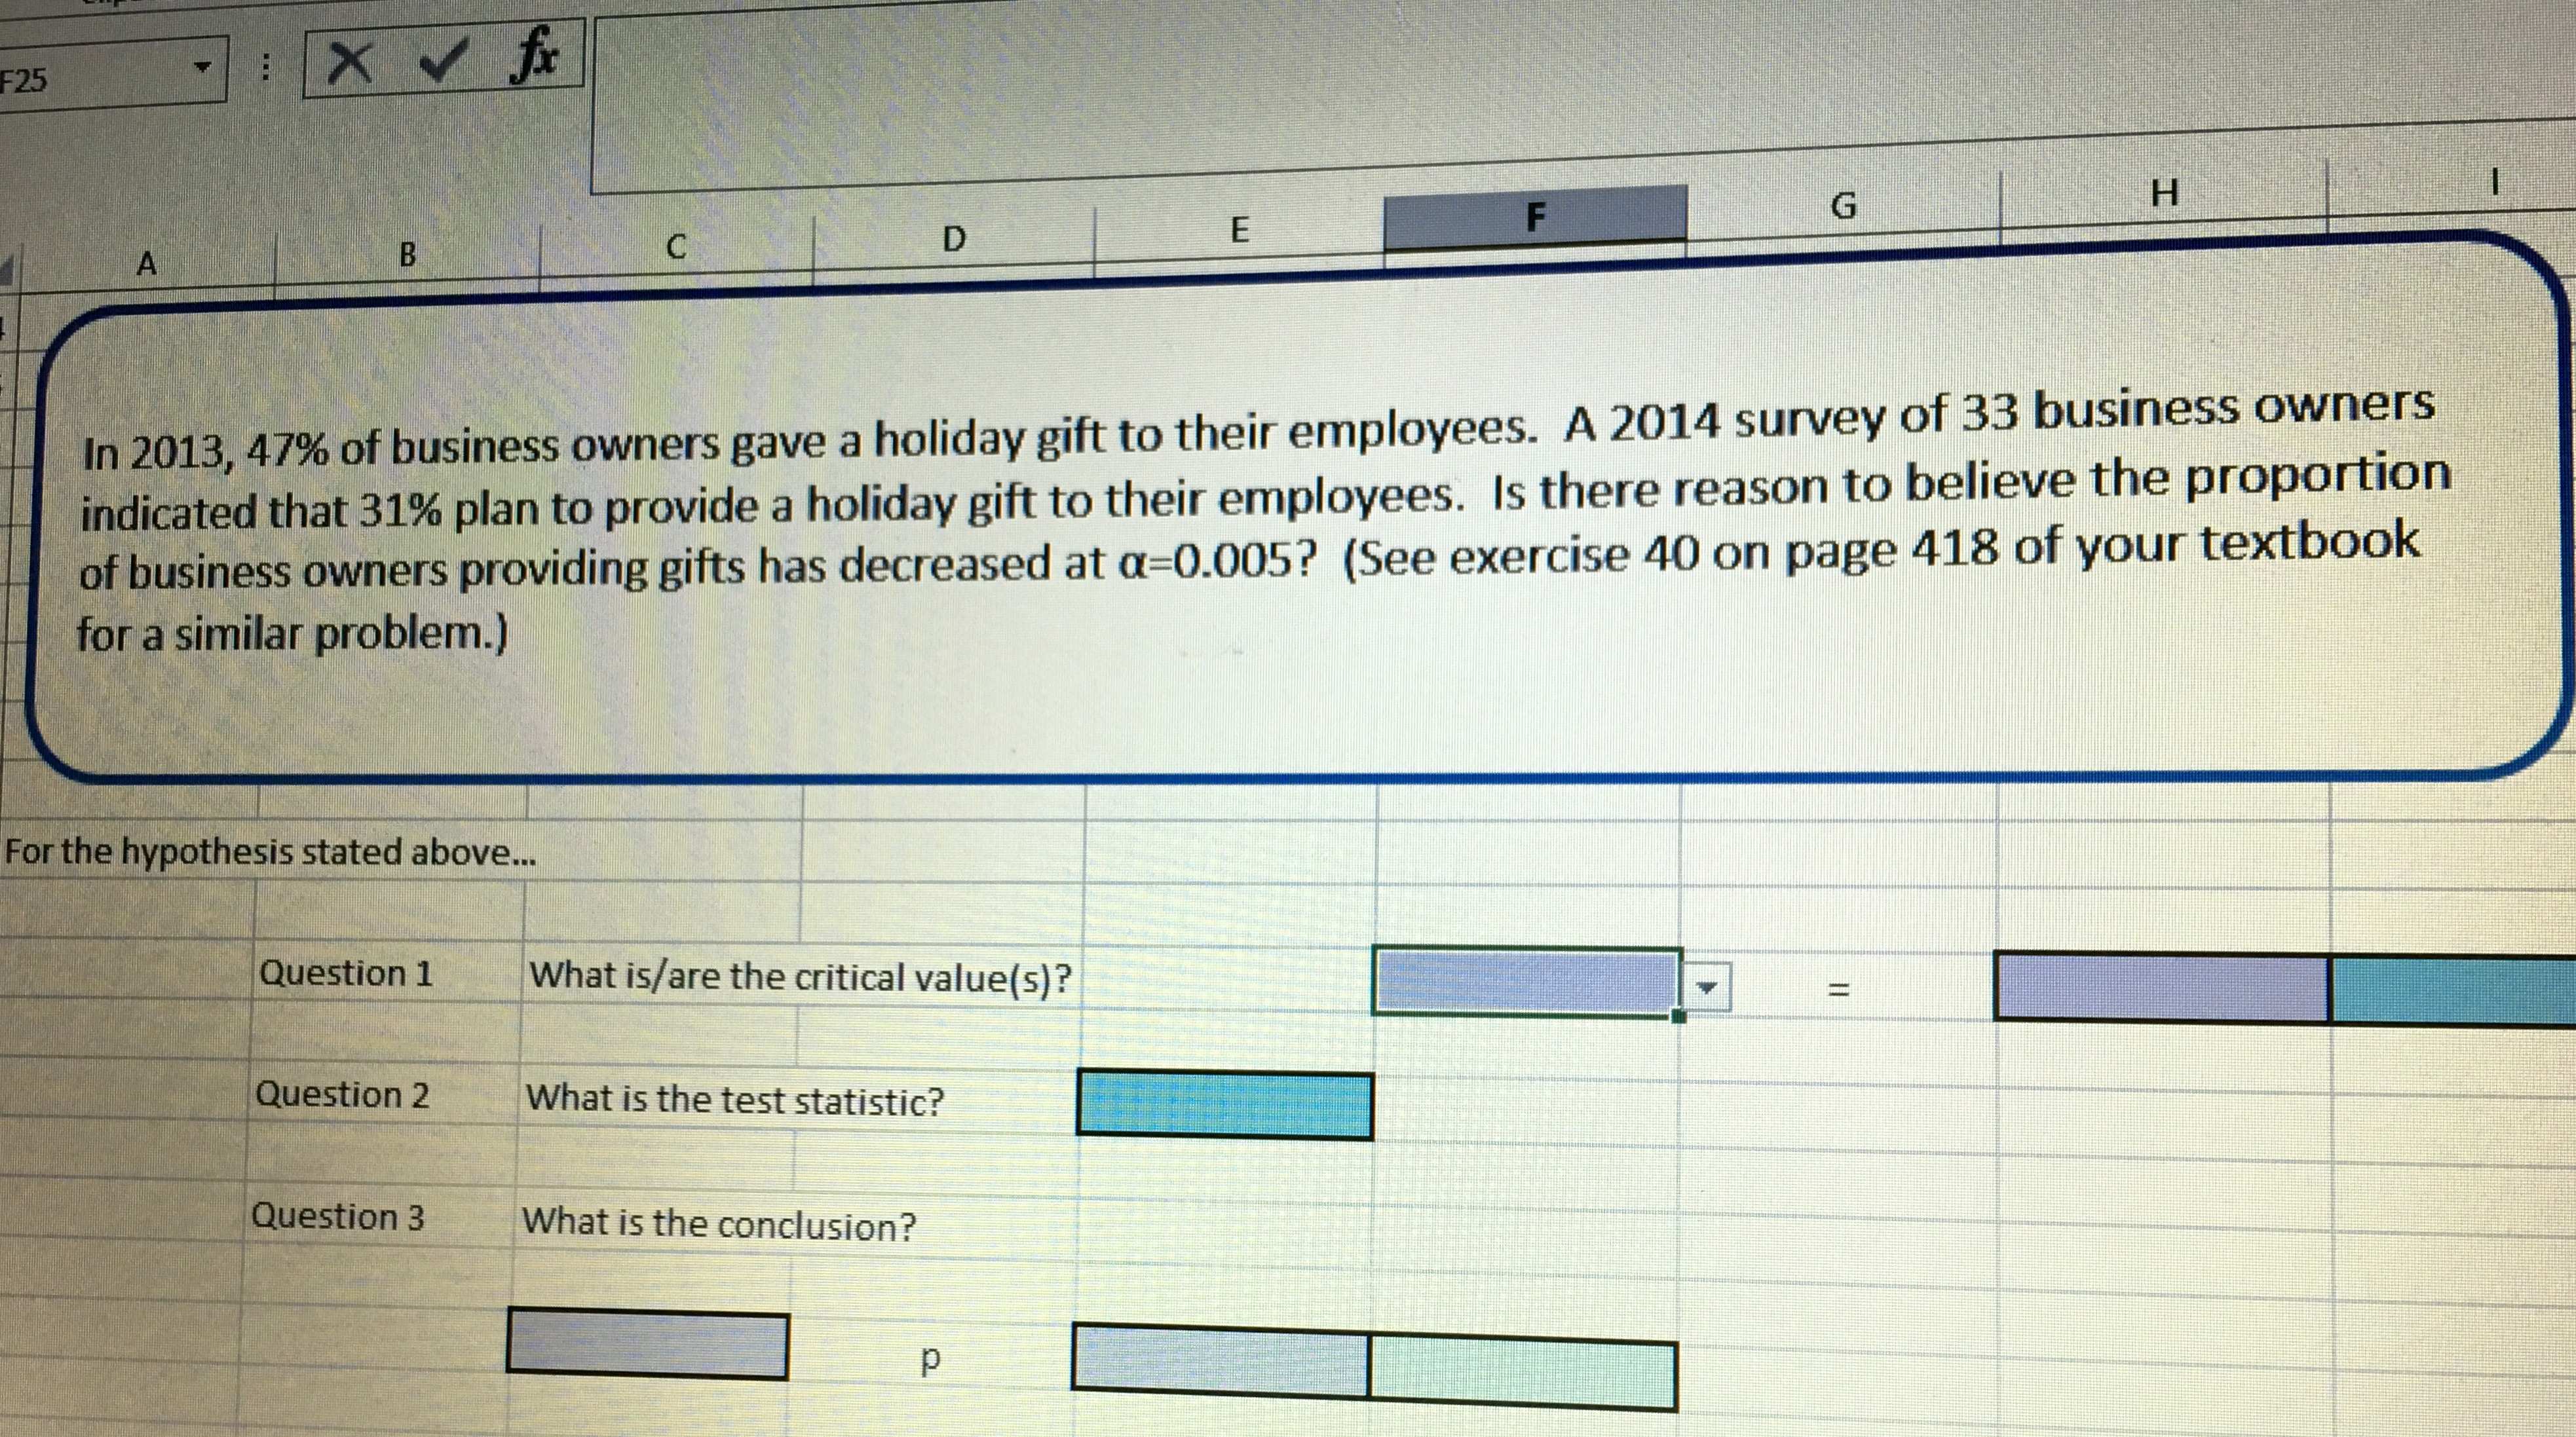 F25 In 201347% indicated that 31 of business owners gave a holiday gift to their employees. A 2014 survey of 33 business owners % plan to provide a holiday gift to their employees. Is there reason to believe the proportion , of business owners providing gifts has decreased at a-0.005? (See exercise 40 on page 418 of your textbook for a similar problem.) For the hypothesis stated above... Question 1What is/are the critical value(s)? Question 2 What is the test statistic? Question 3 What is the conclusion?